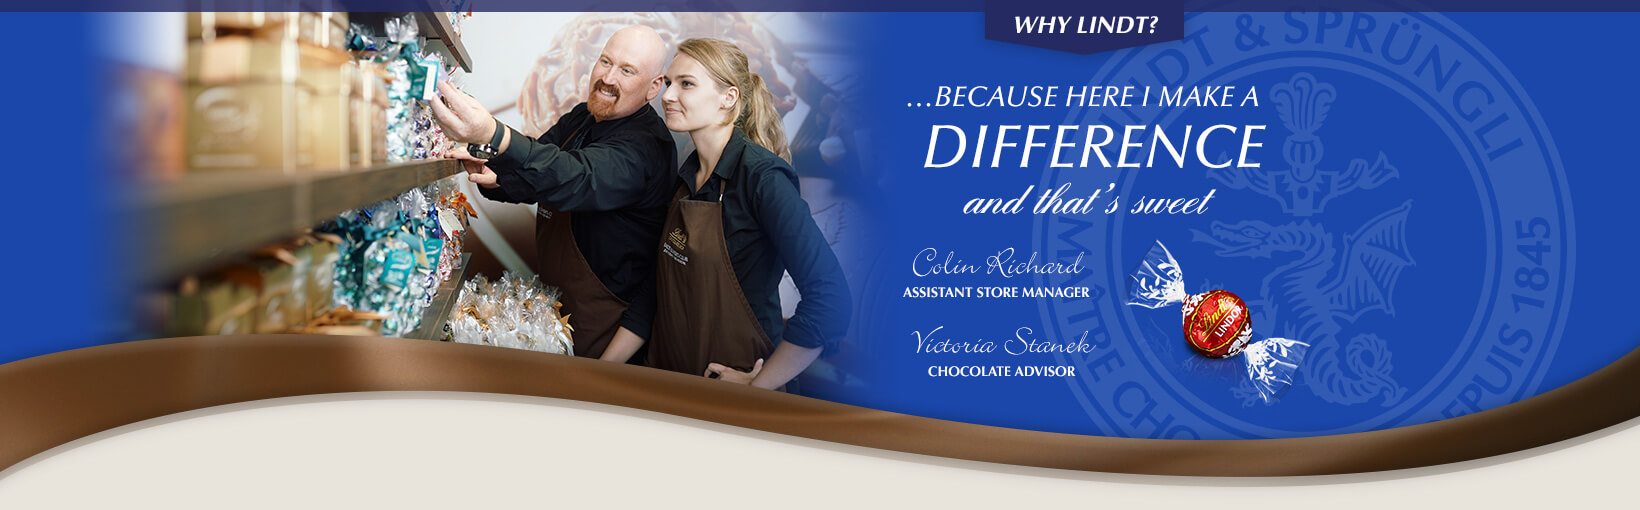 Why Lindt? …Because here I make a difference and that's sweet. Colin Richard, Assistant Store Manager and Victoria Stanek, Chocolate Advisor